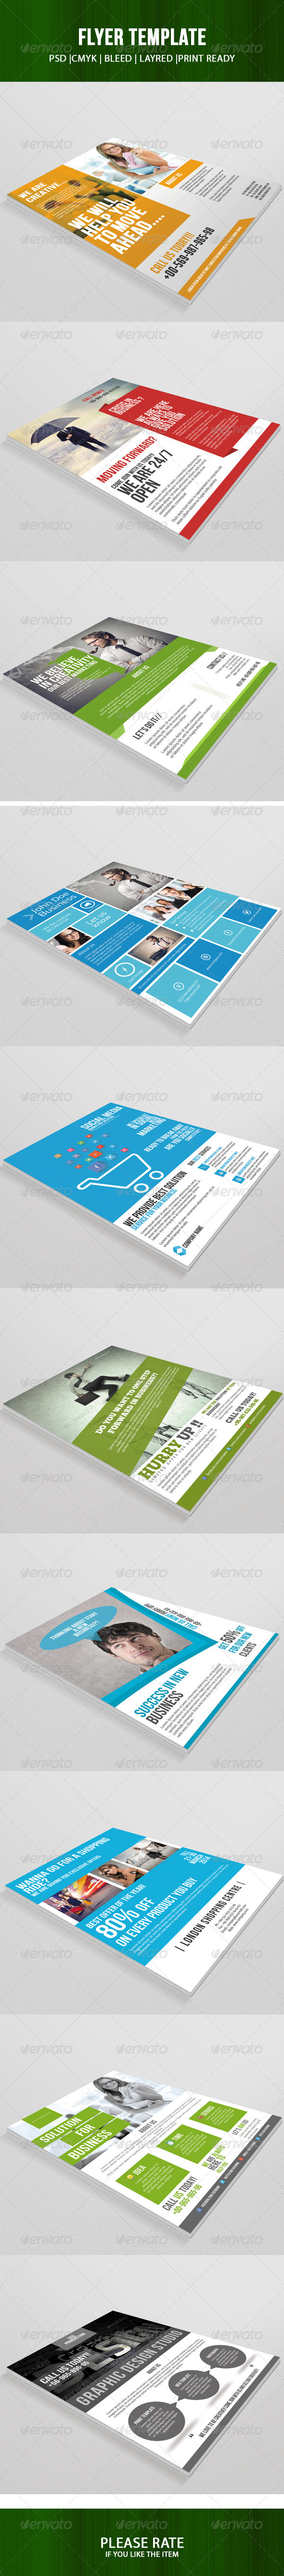 10 Flyer Template Bundle